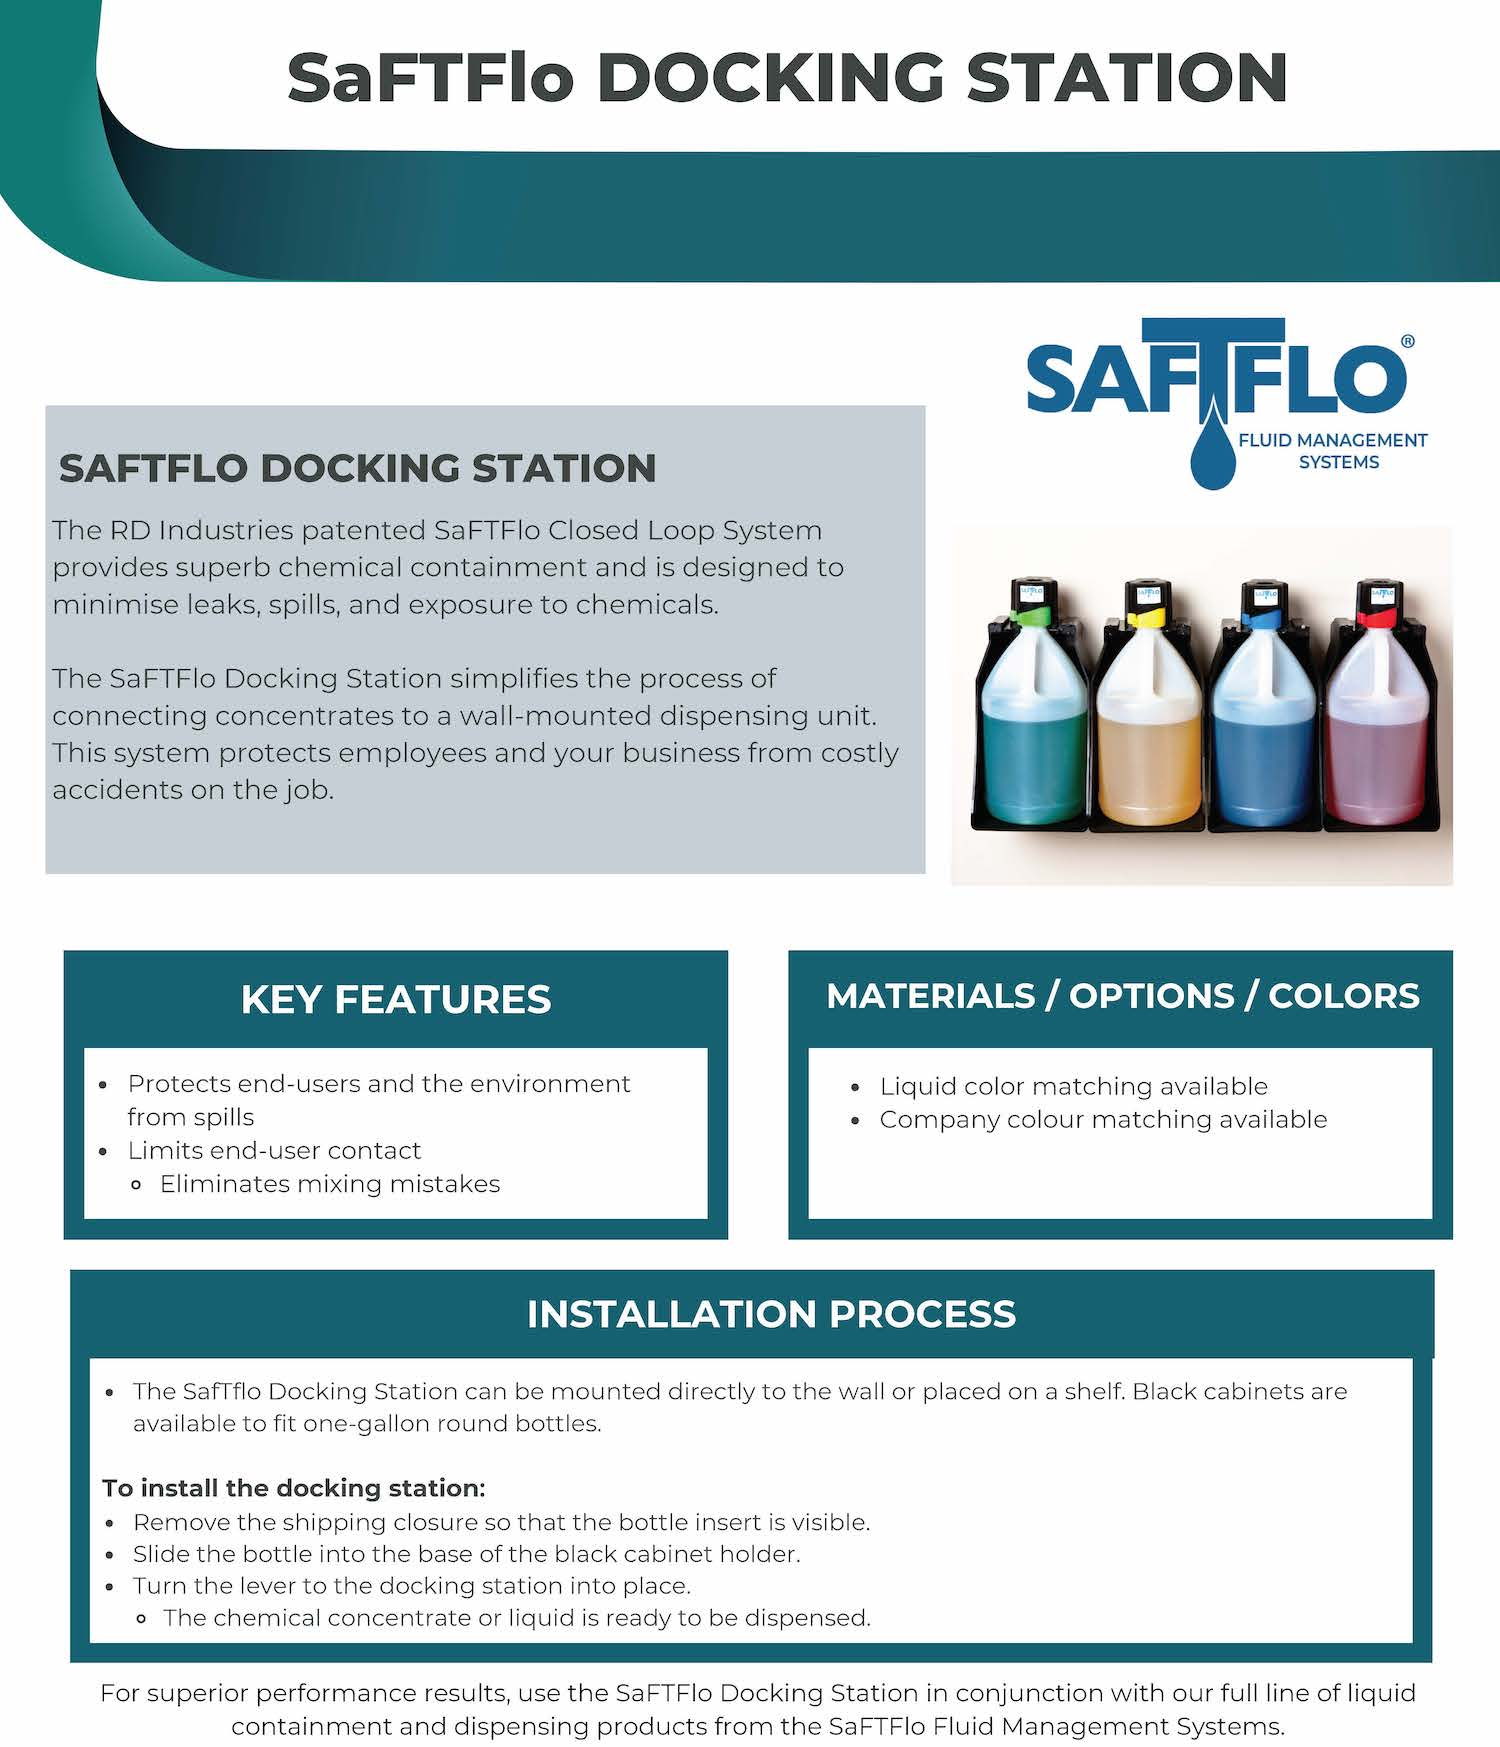 SafTflo Fluid Management System | Docking Station